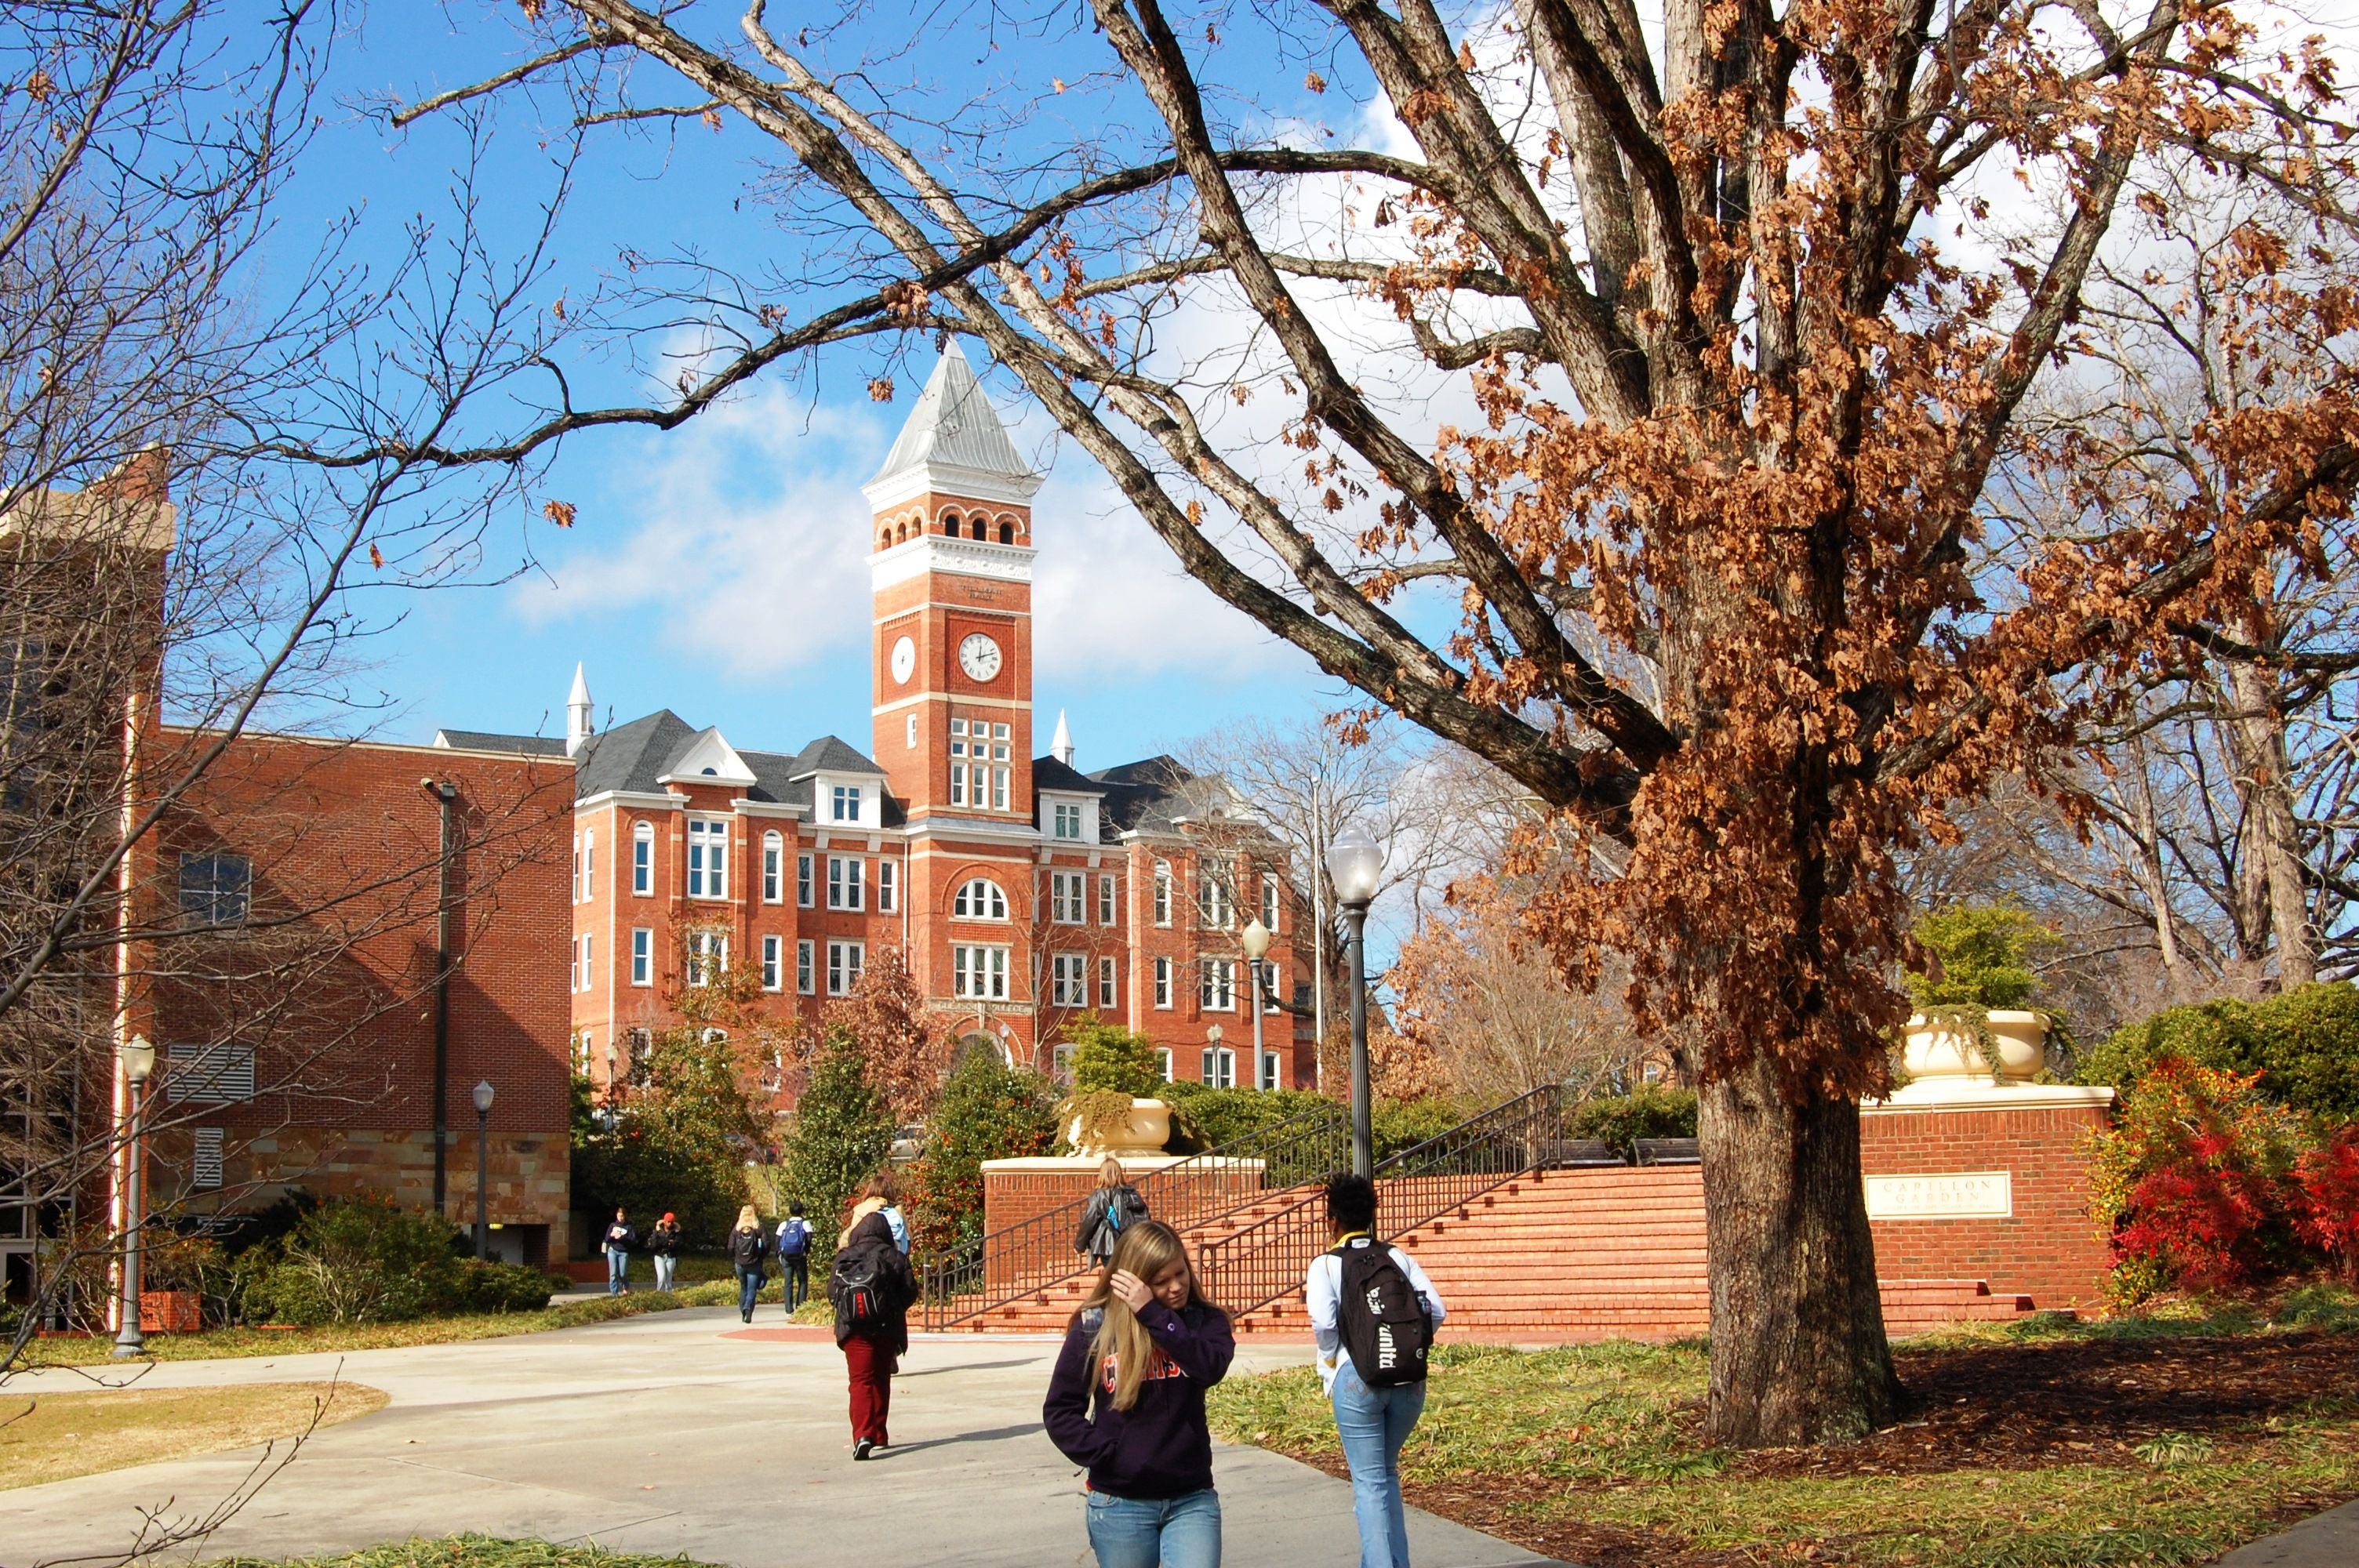 an essay on clemson university Clemson university is a public educational institution that was founded in 1889 as an all-male military school the clemson university admissions policy started accepting women in 1995.